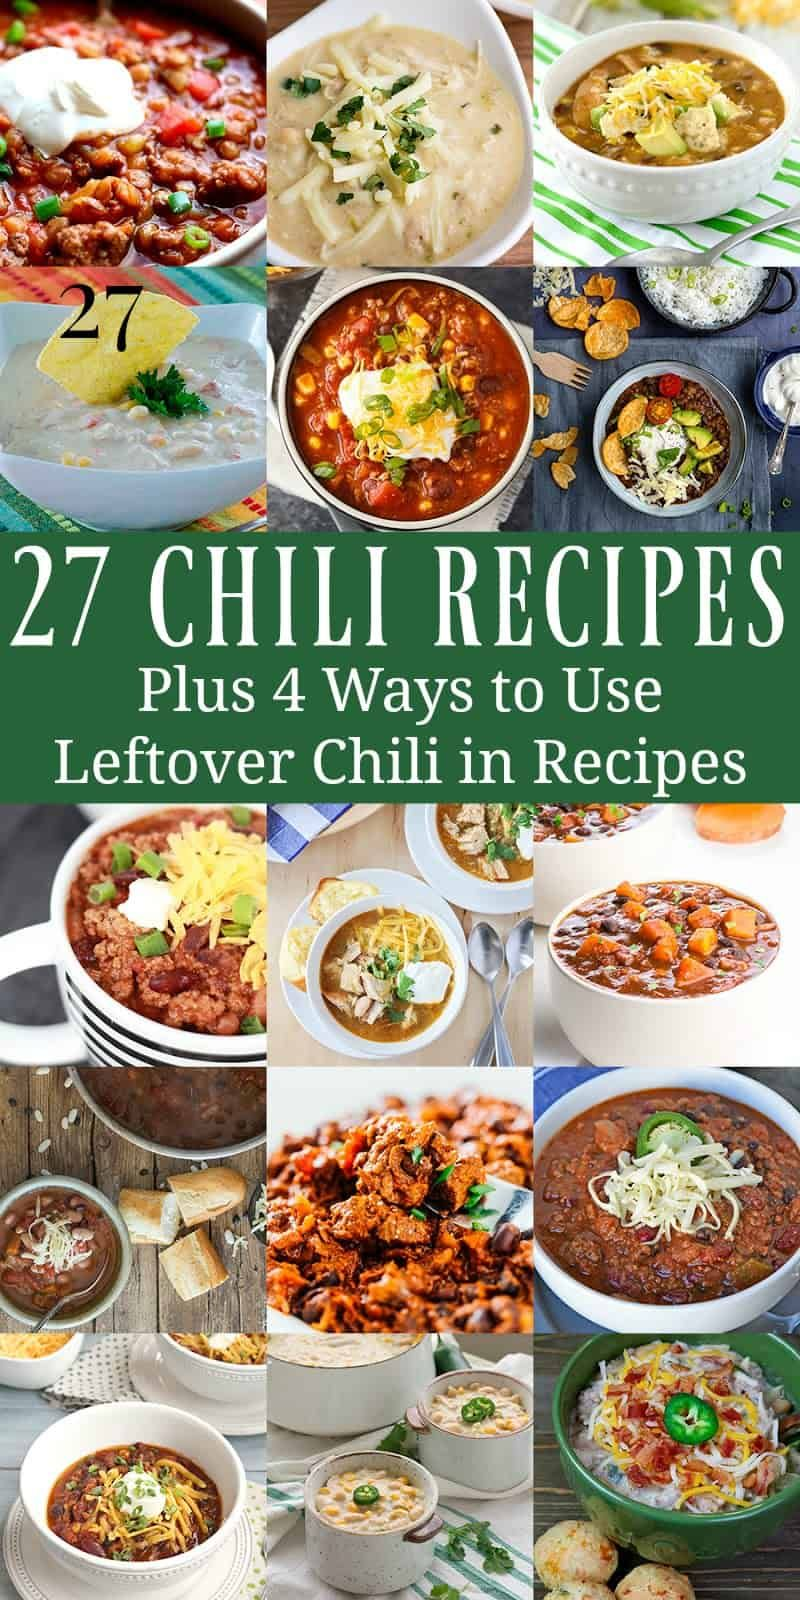 27 Chili Recipes Plus 4 Ways To Use Leftover Chili In